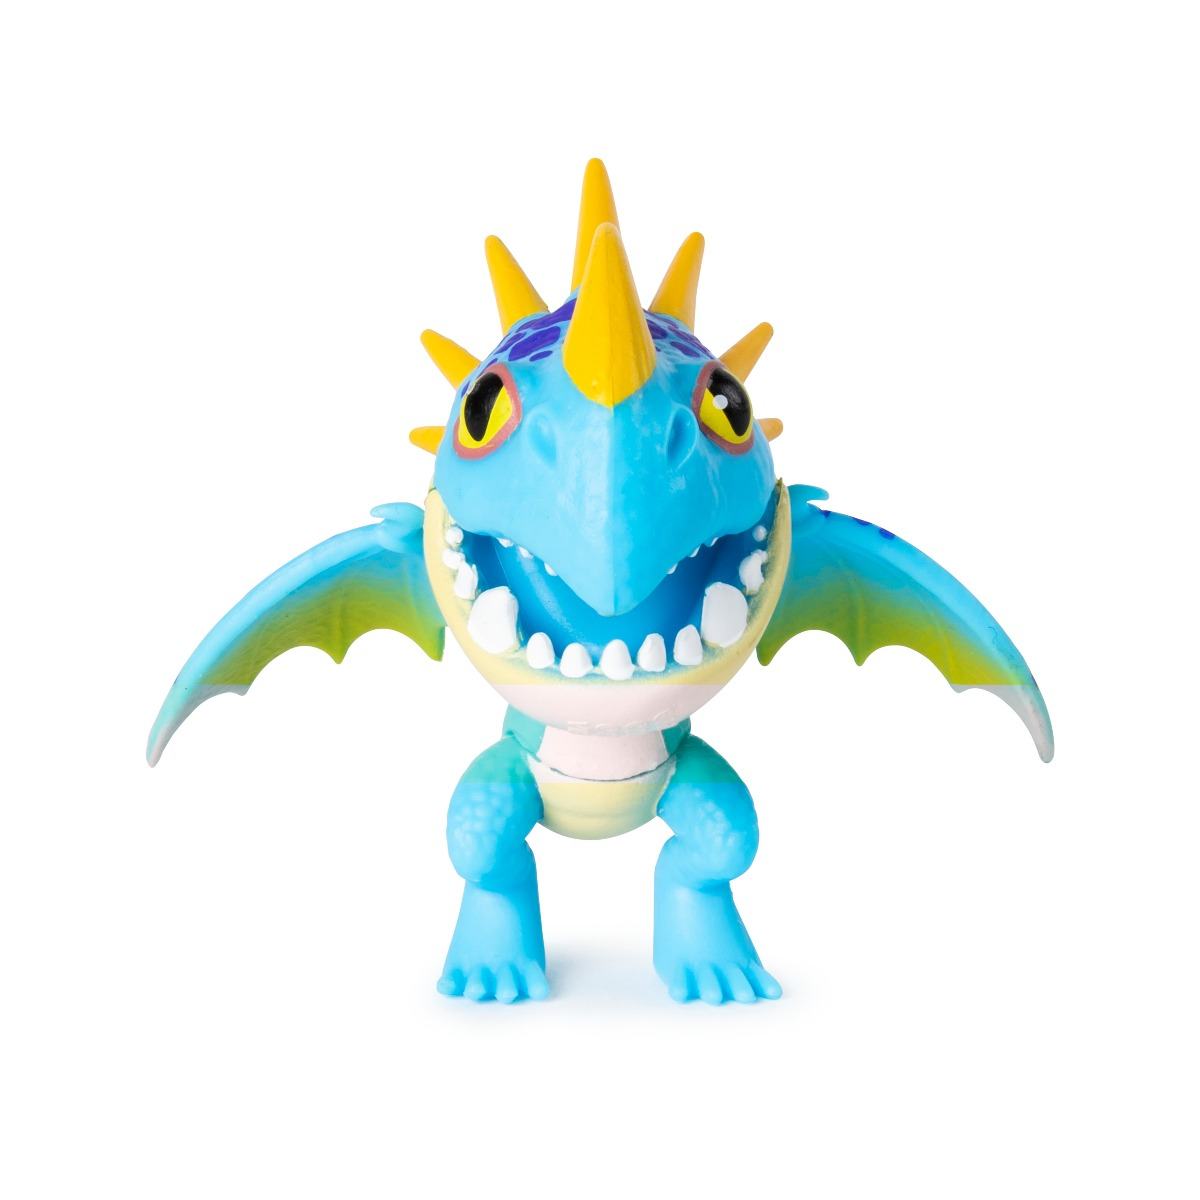 Figurina How To Train Your Dragon The Hidden World Bioluminescent, Blue